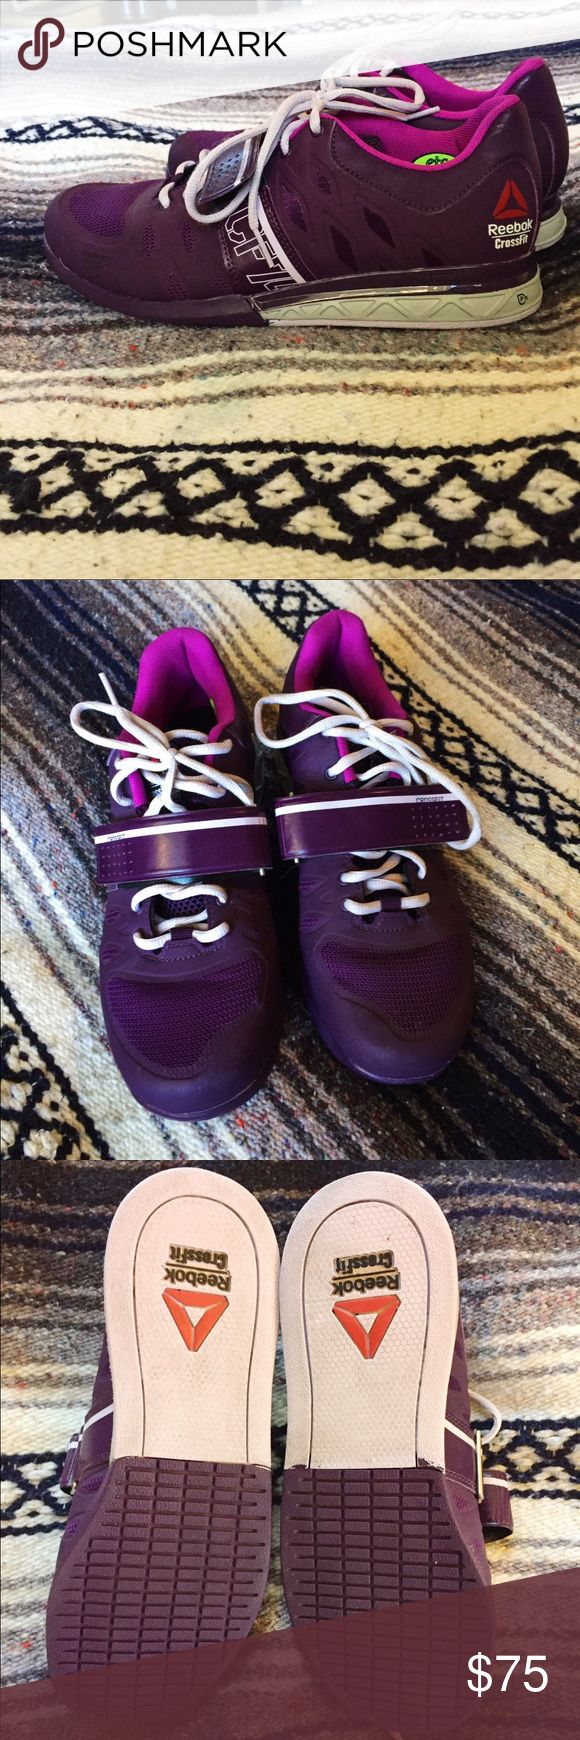 Reebok Crossfit lifting shoes Great lifting shoes in a cute purple color. In great condition, only worn a couple of times. CF74 Reebok Shoes Sneakers